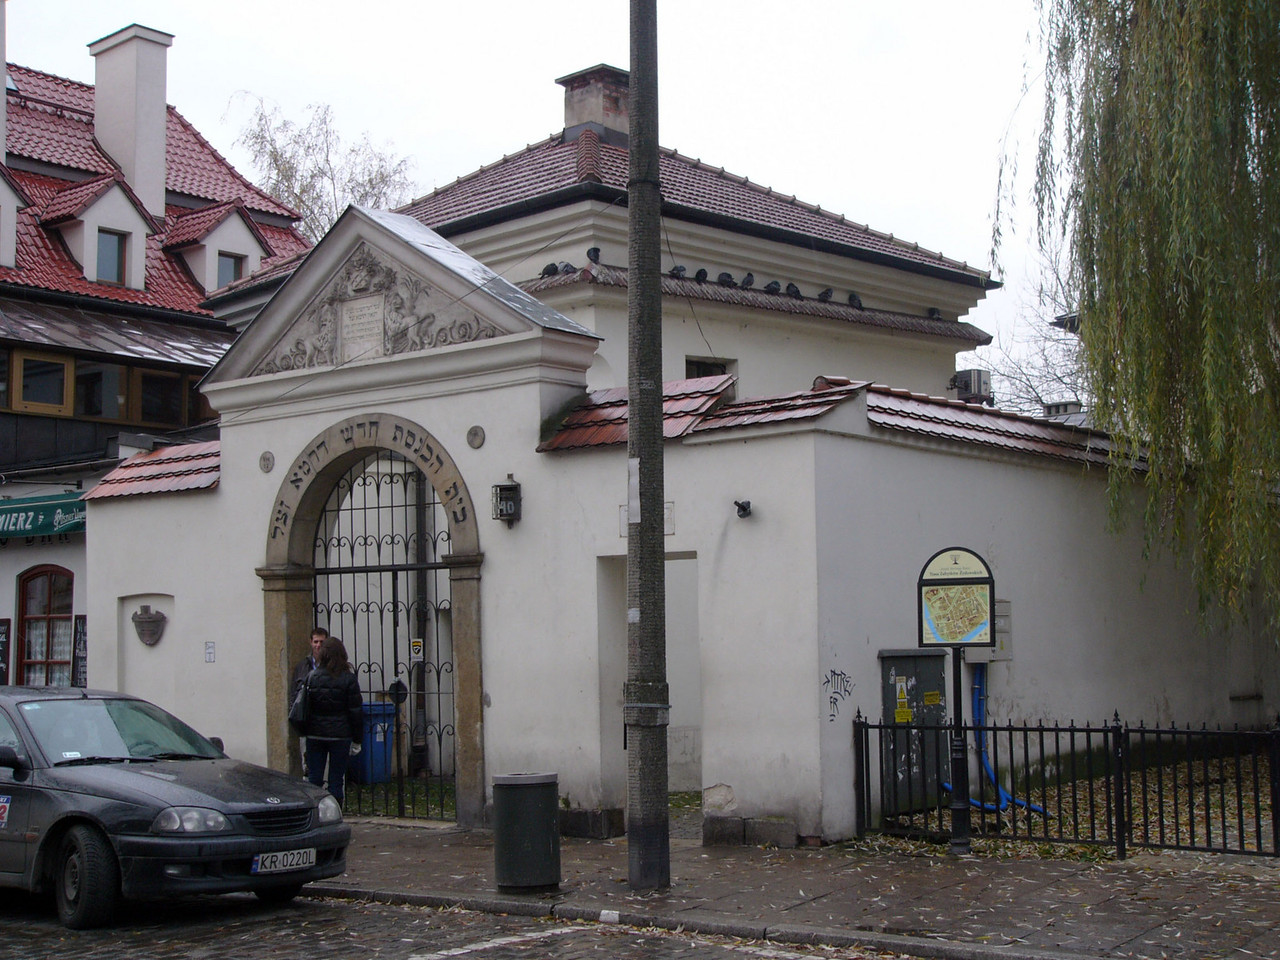 The Remu Synagogue from the street